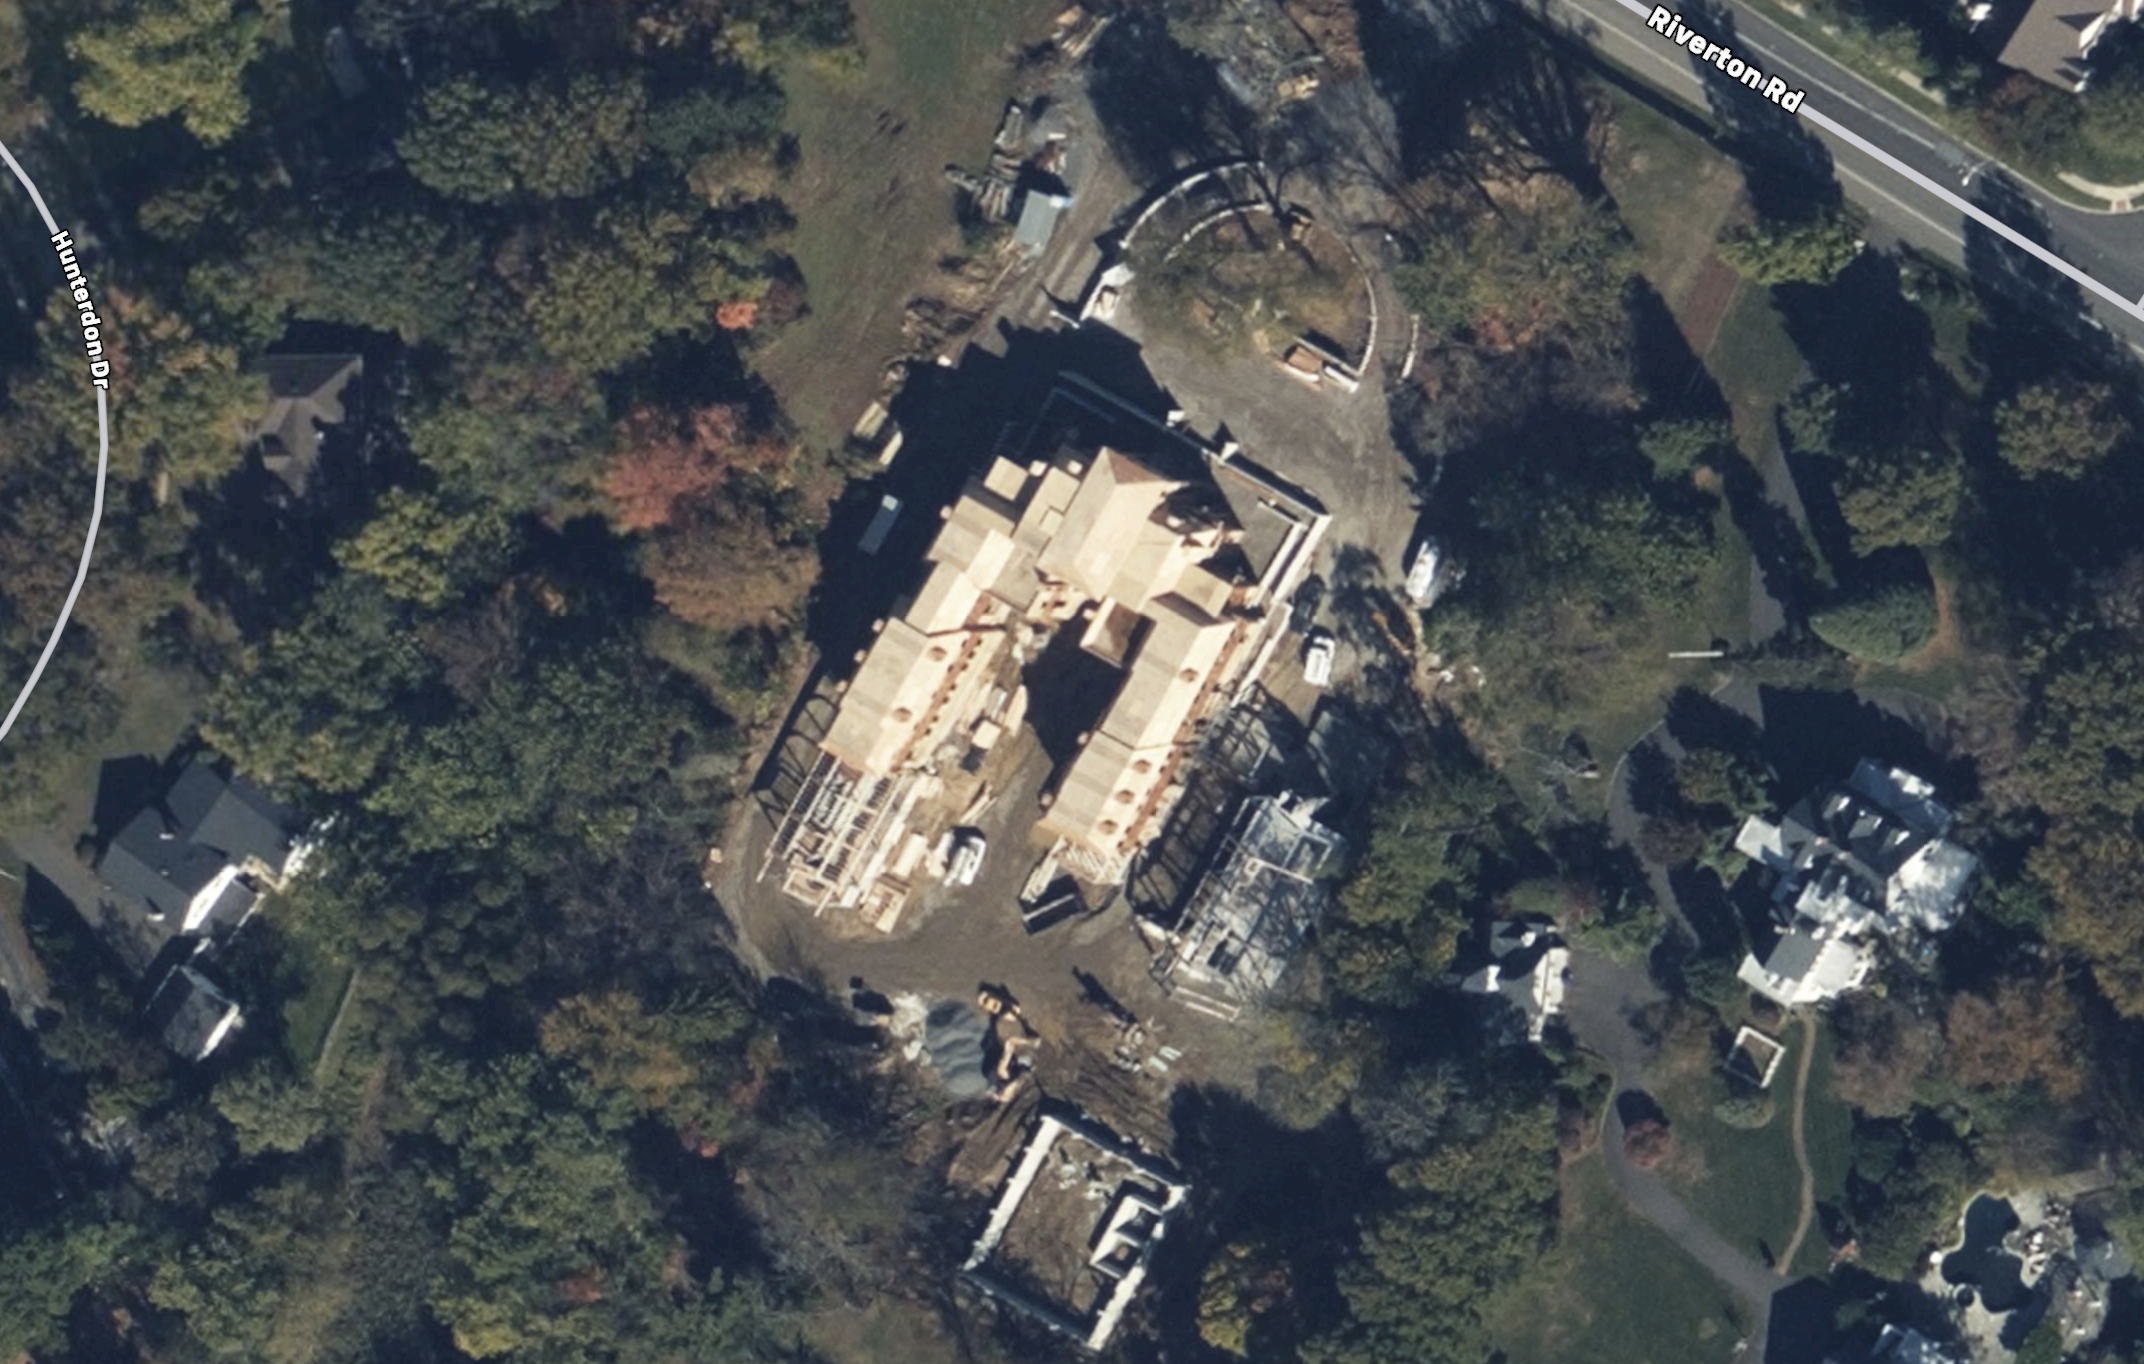 44,000+ Square Foot Mega Mansion Being Built In New Jersey